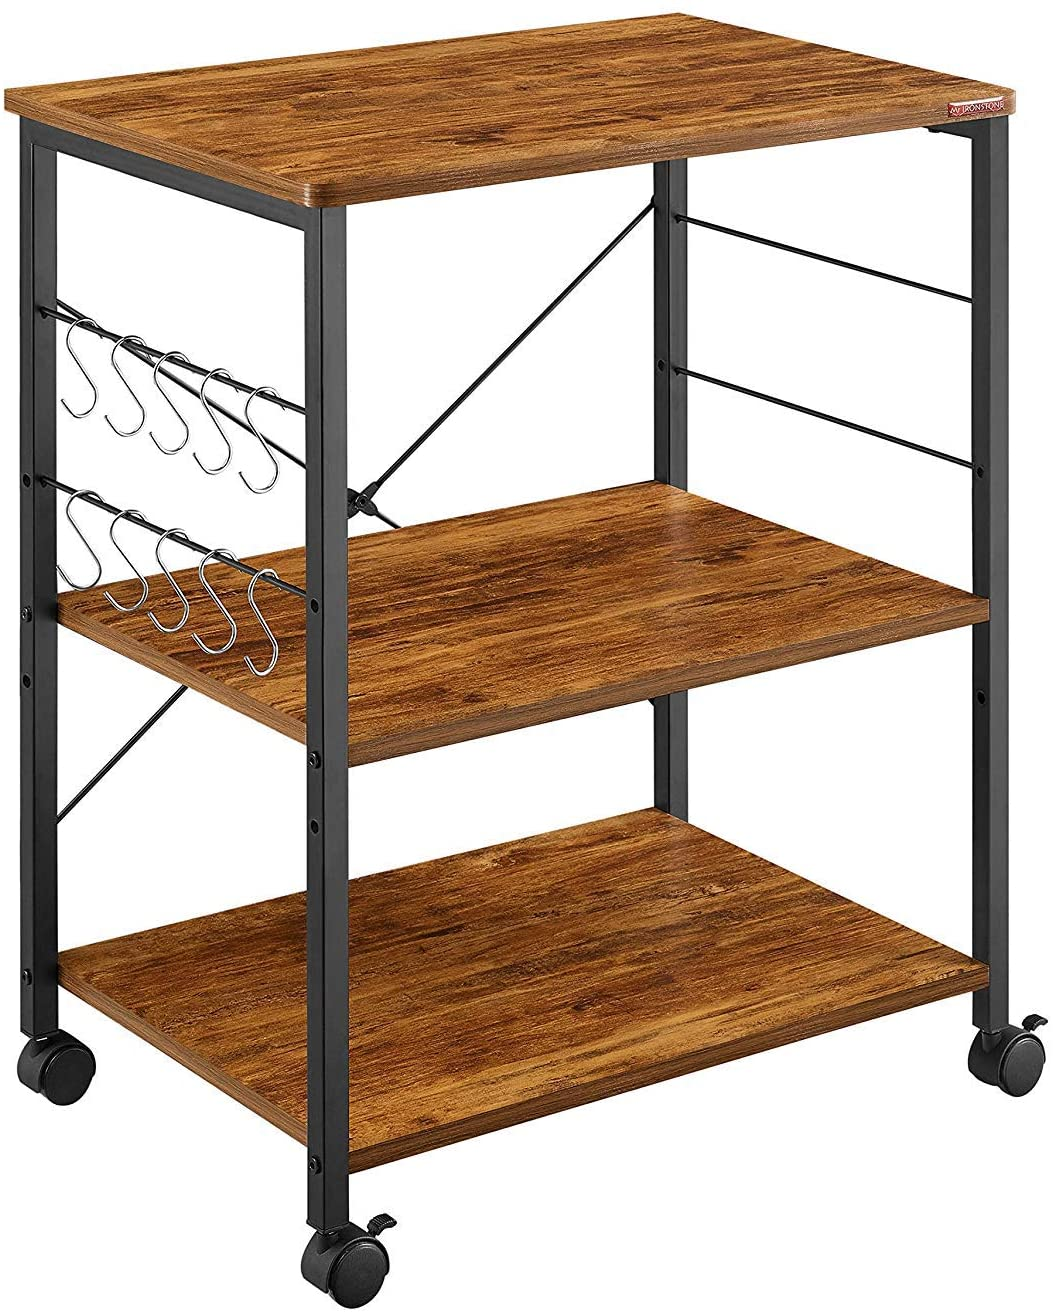 7. Mr IRONSTONE Rolling Bakers Rack